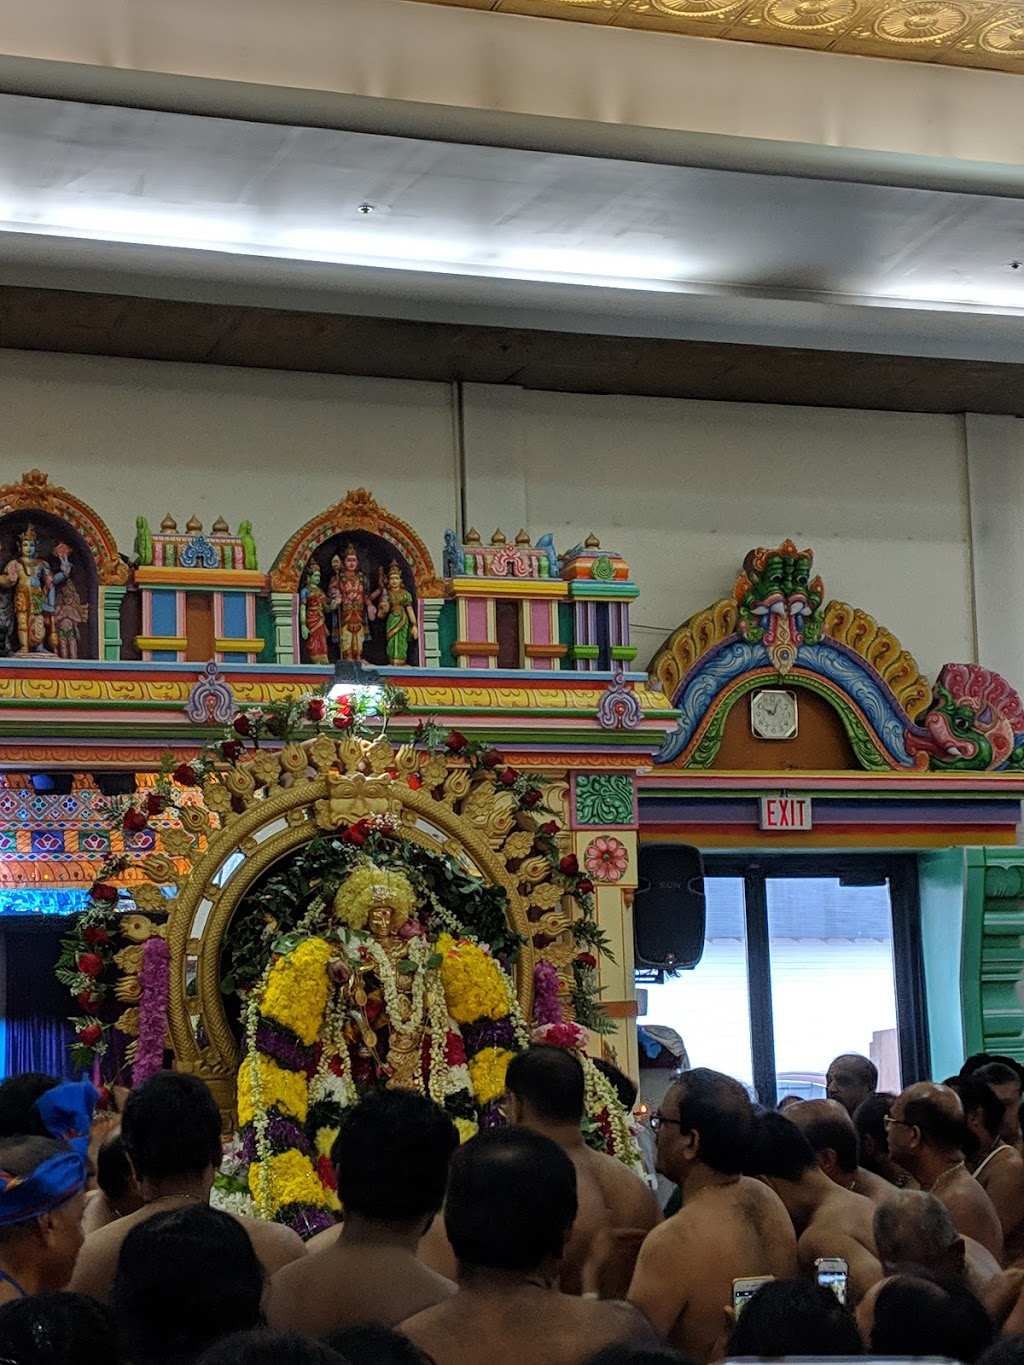 Hindu Temple Society of Canada   hindu temple   10865 Bayview Ave, Richmond Hill, ON L4S 1M1, Canada   9058839109 OR +1 905-883-9109